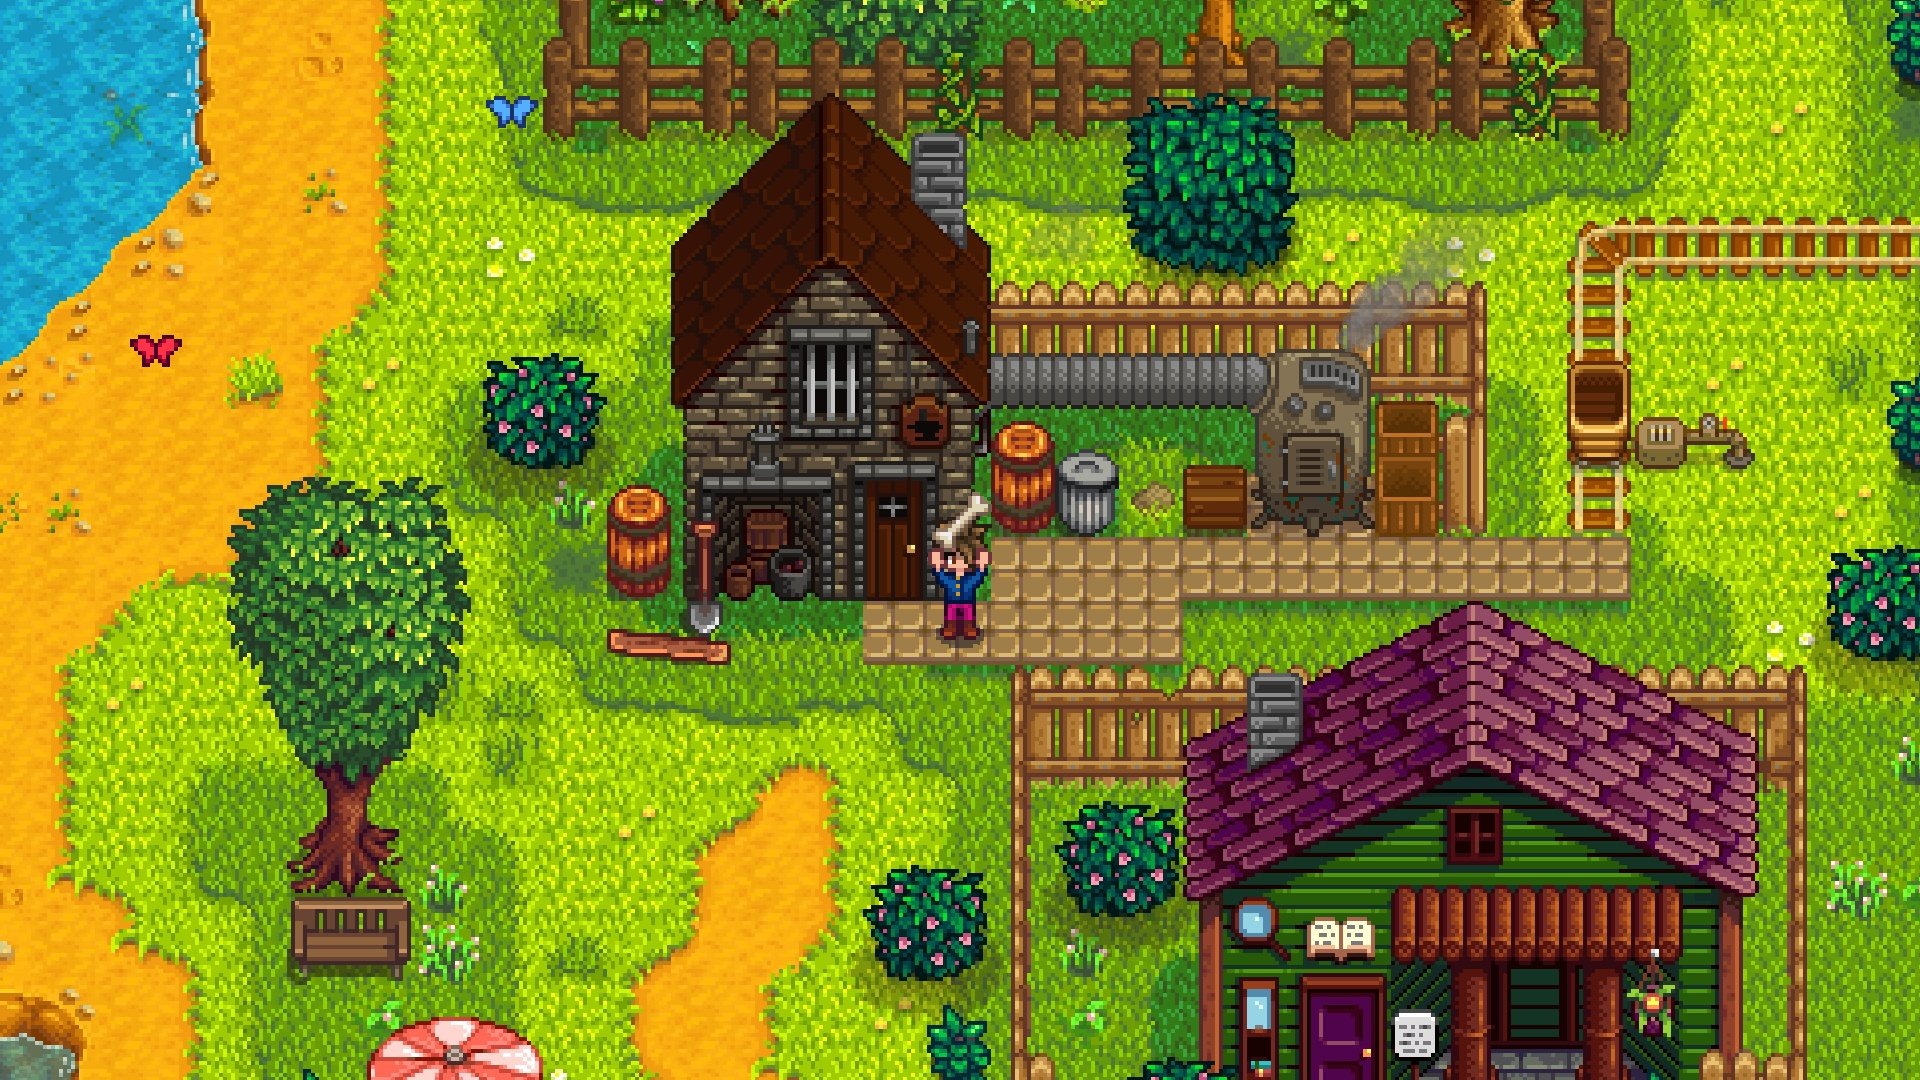 Stardew Valley Confirmed For PlayStation Vita, New Multiplayer Details